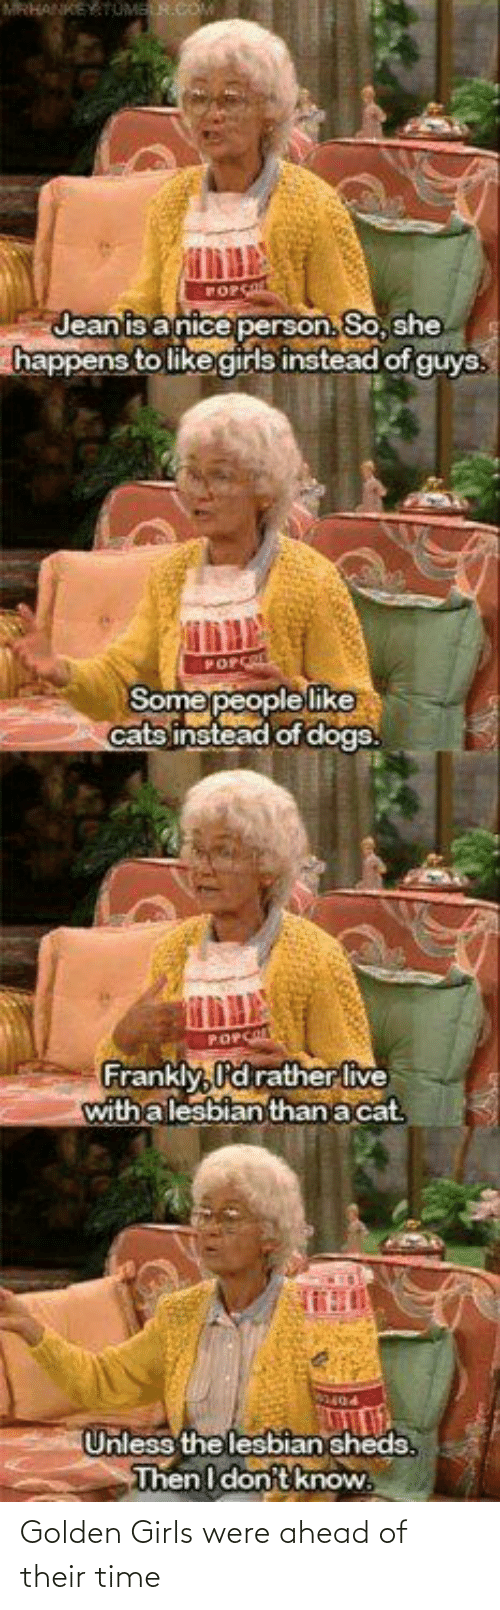 Golden: Golden Girls were ahead of their time